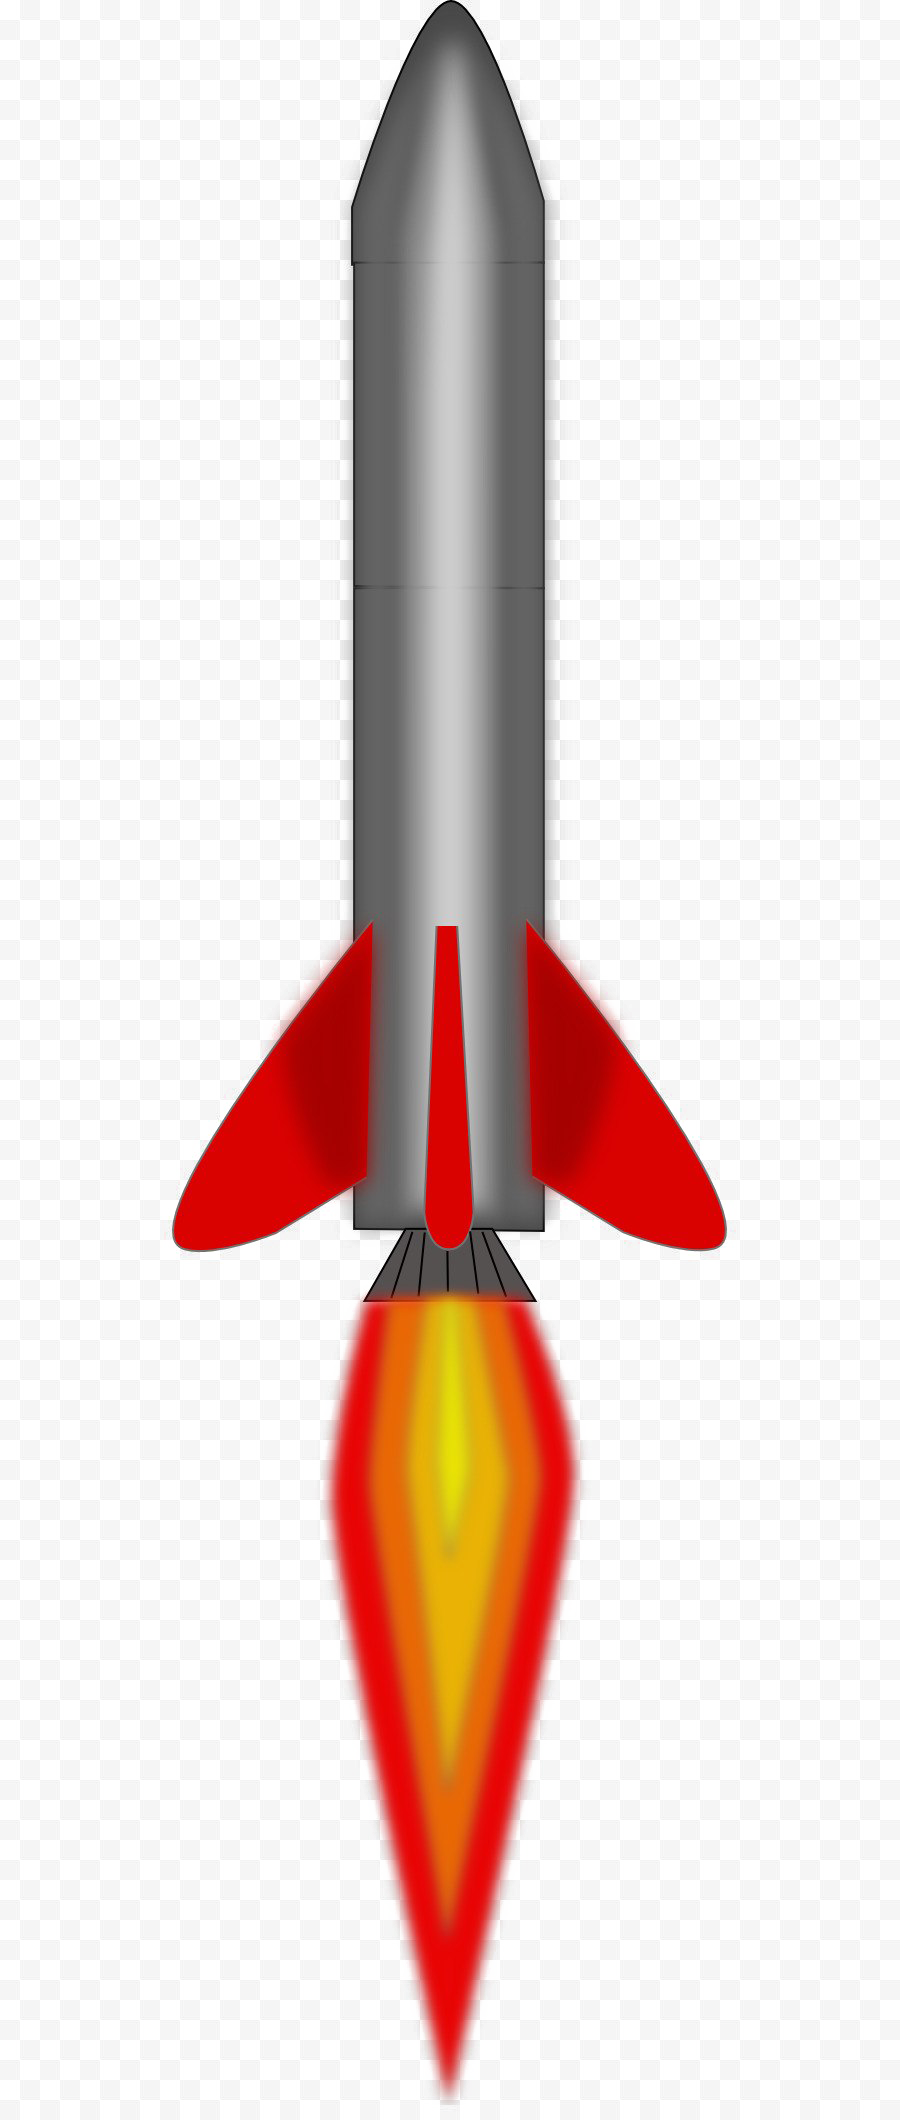 Nuclear Missile PNG Transparent Background #40392